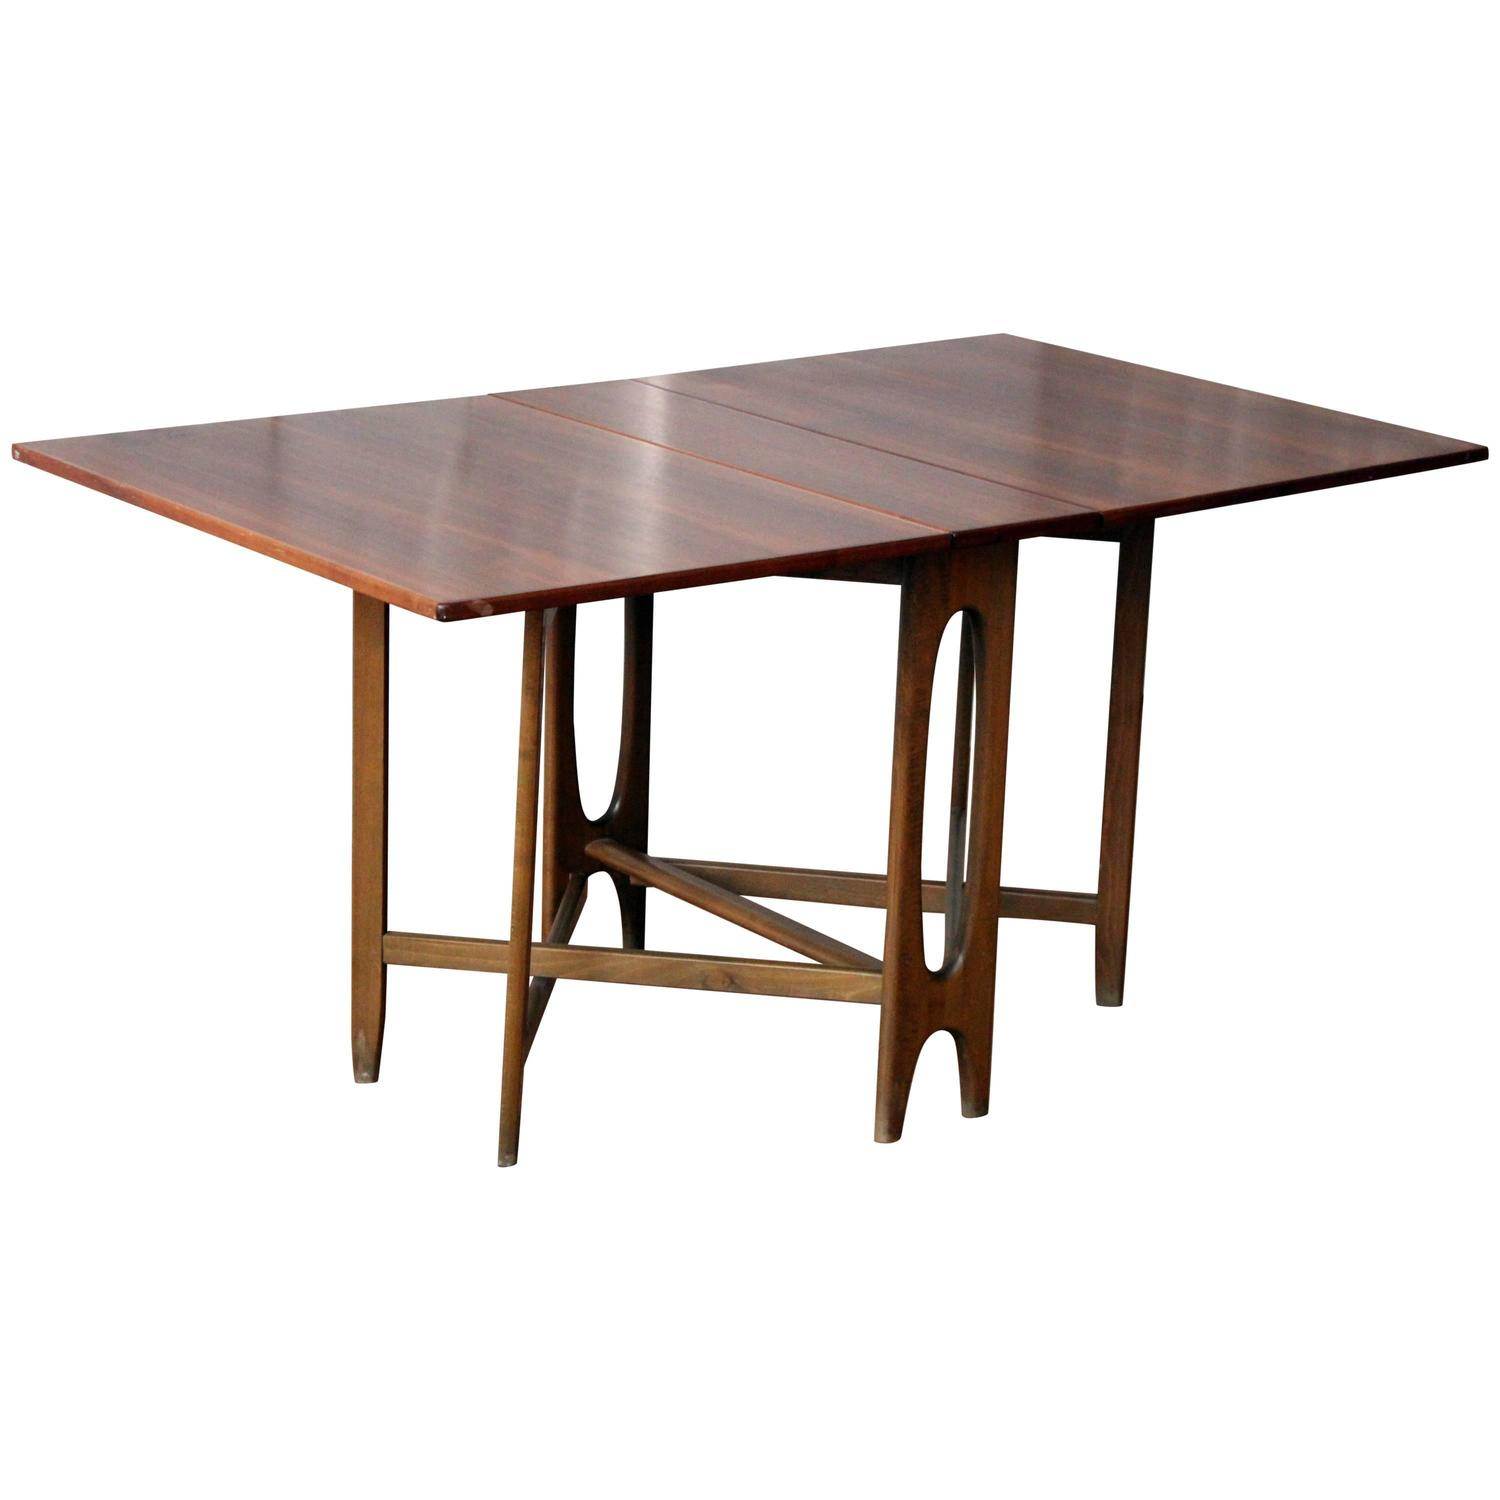 Bendt Winge Drop Leaf Walnut Table at 1stdibs